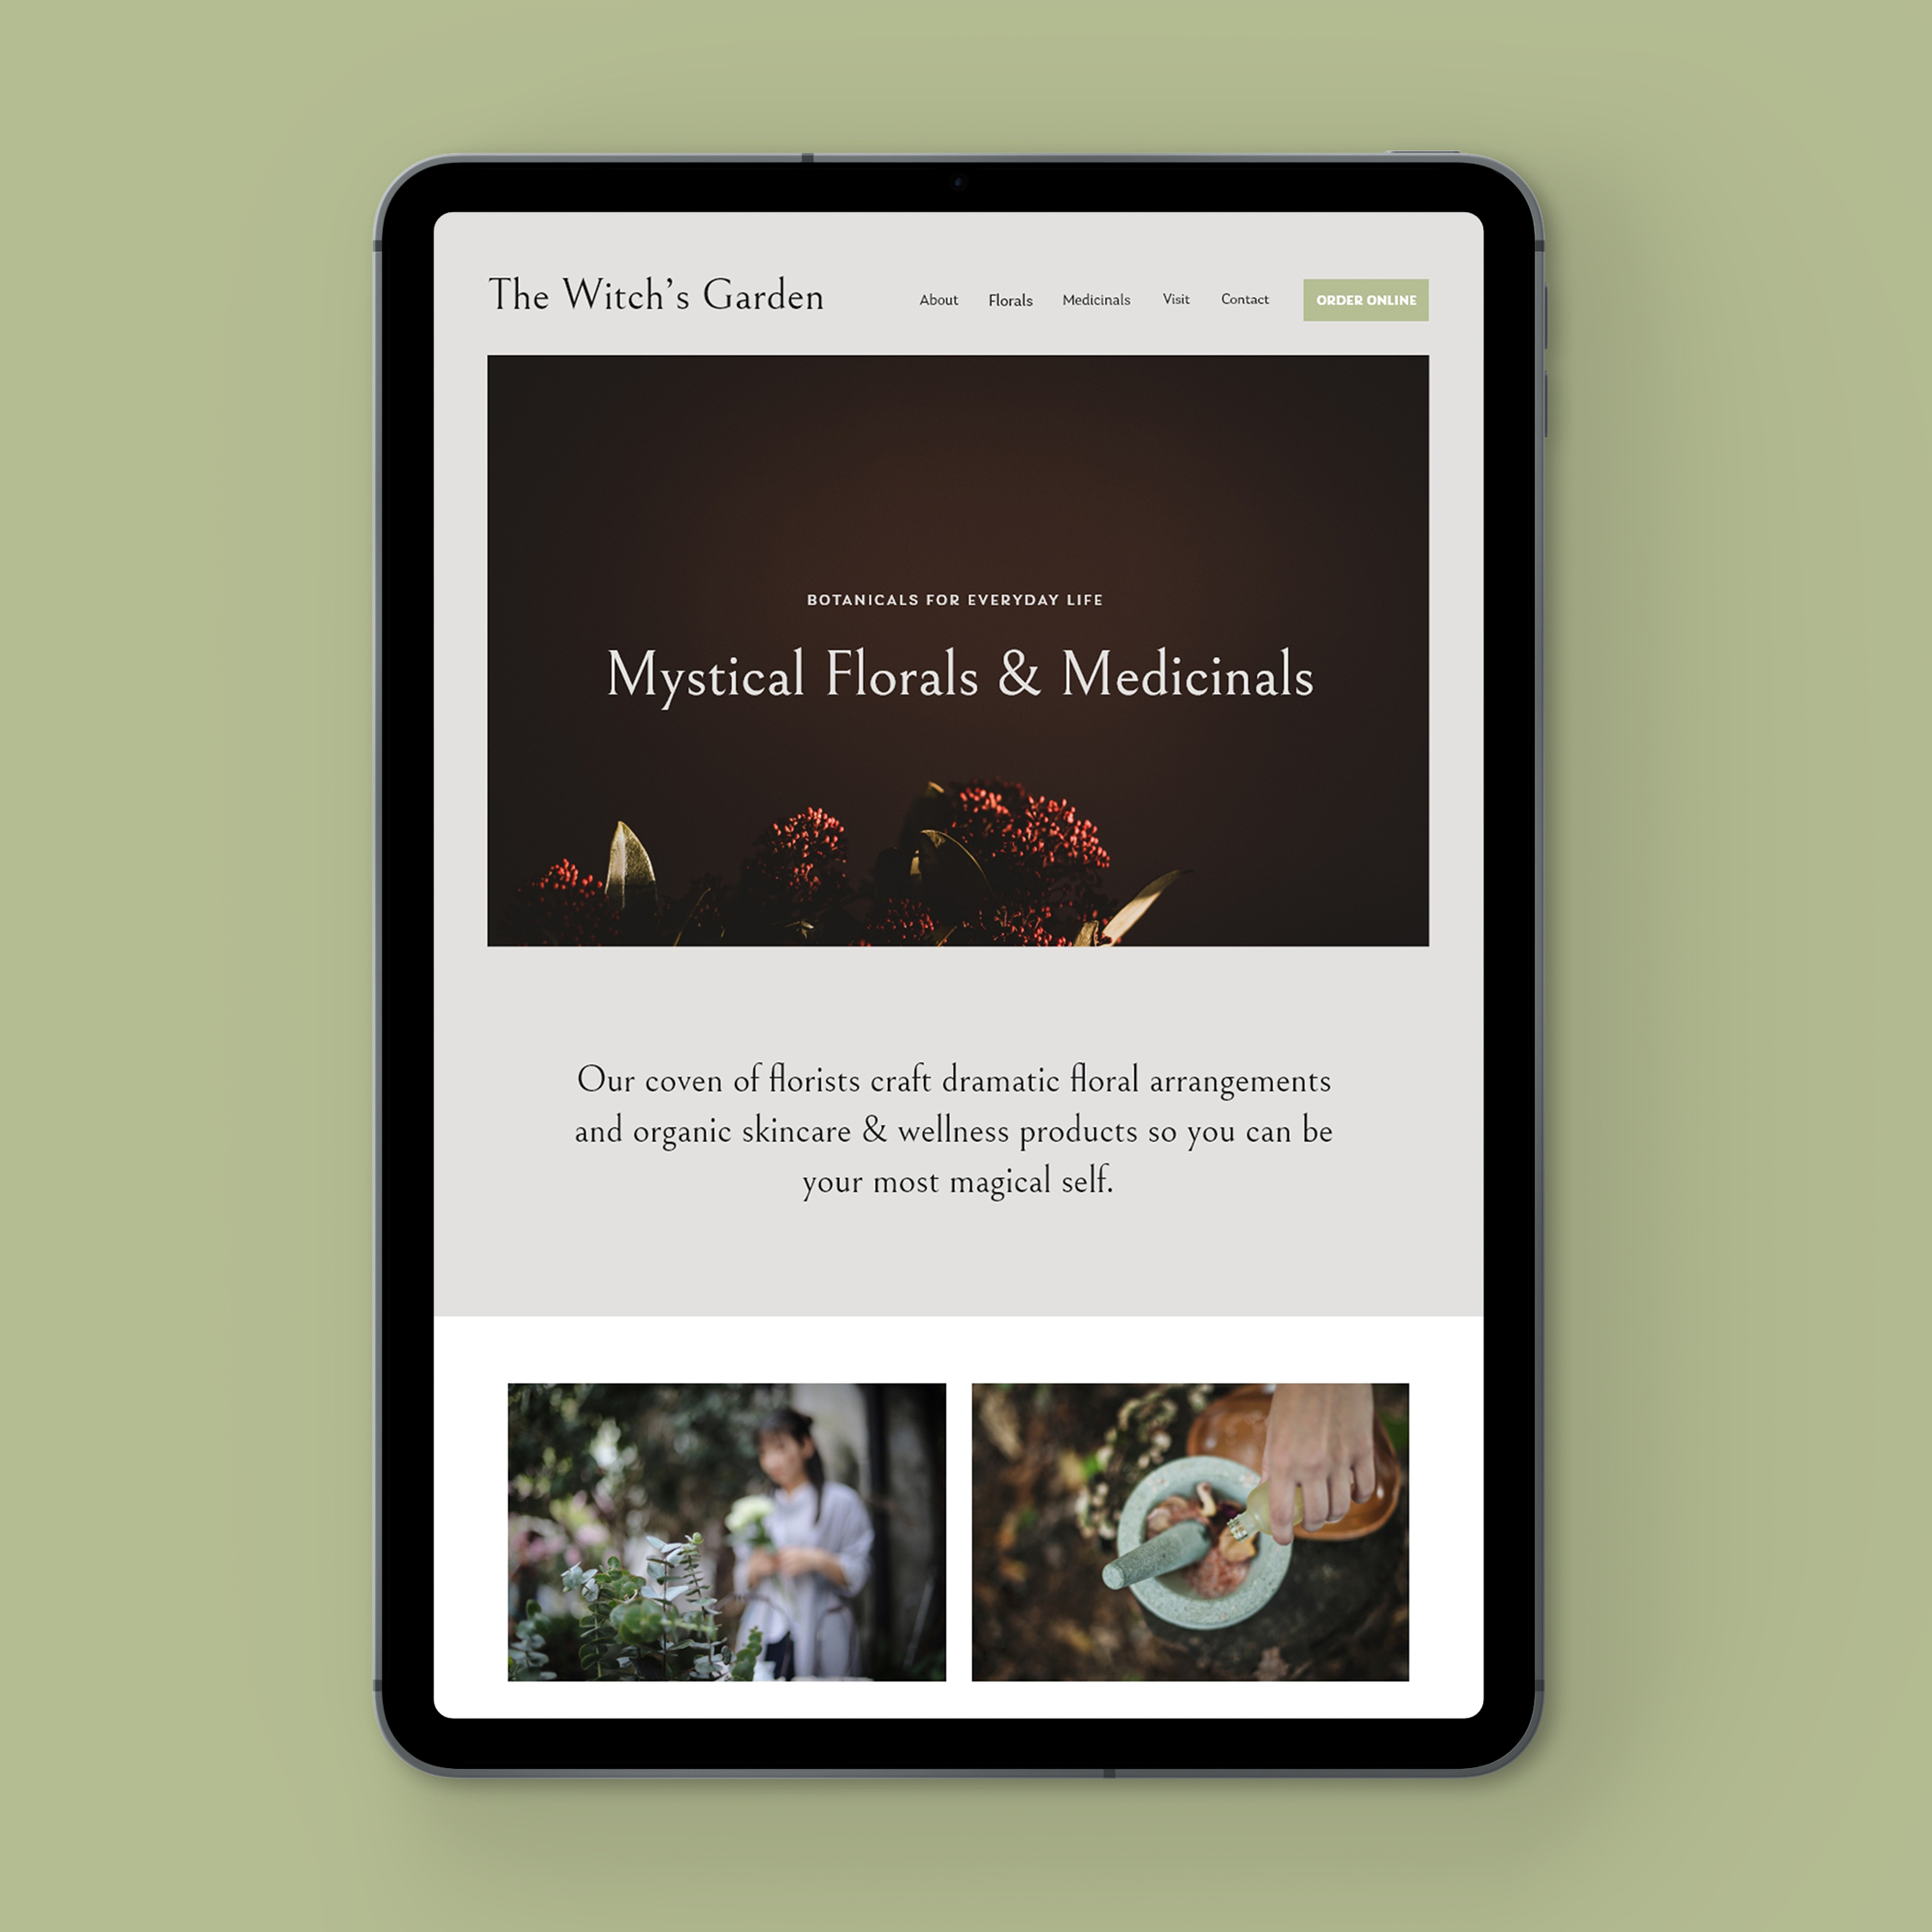 iPad view of The Witch's Garden Squarespace site